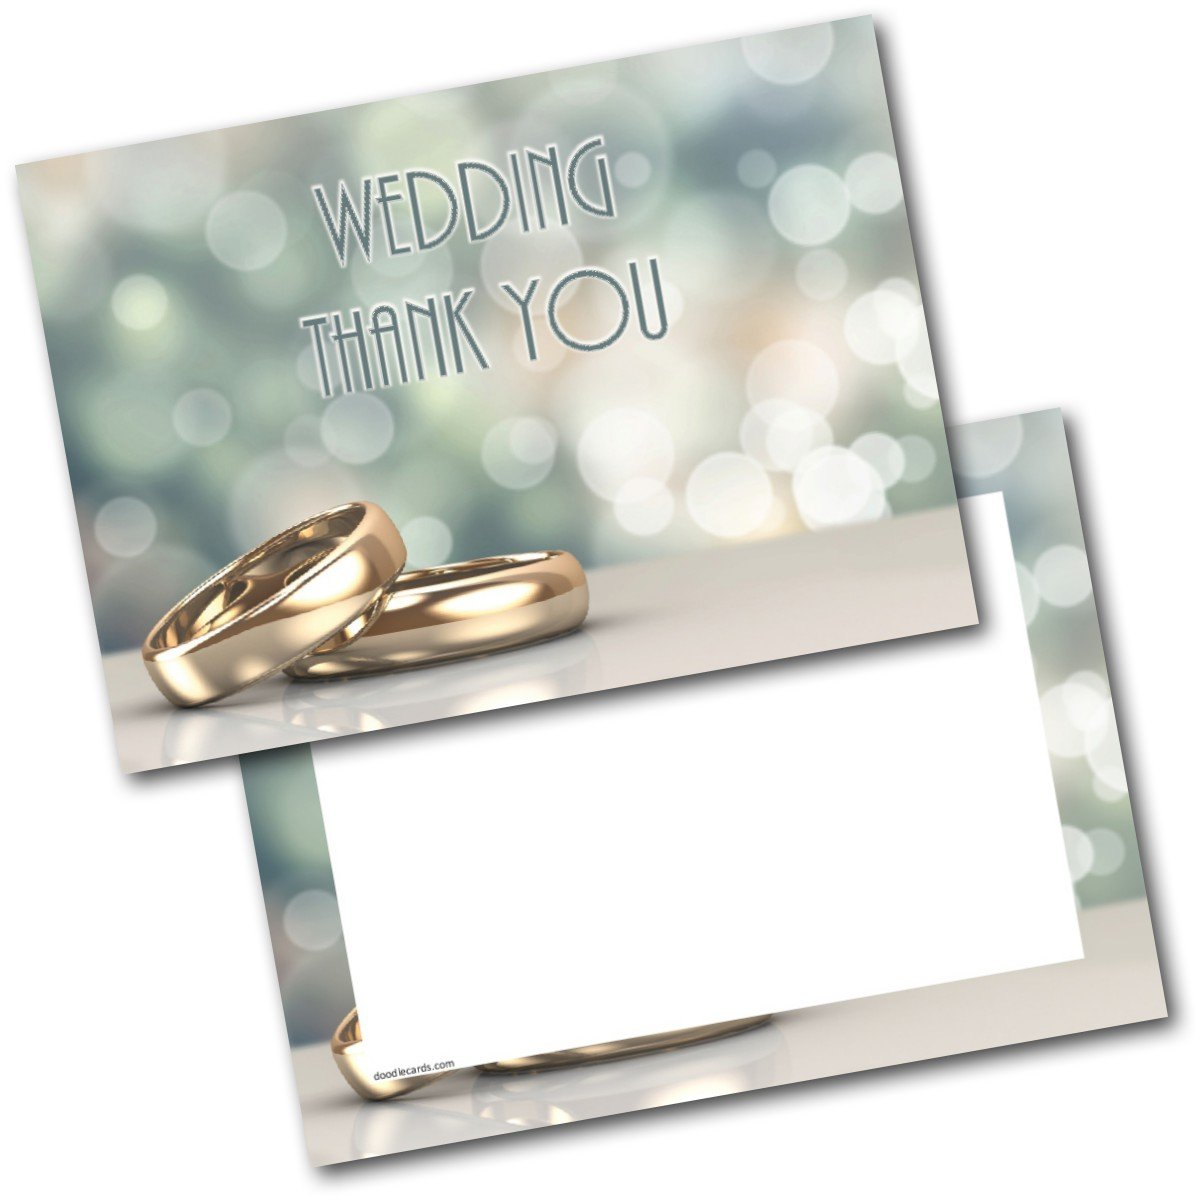 *NEW* Pack of 20 Thank You Wedding gift Two Rings Postcards Cards with Envelopes Doodlecards